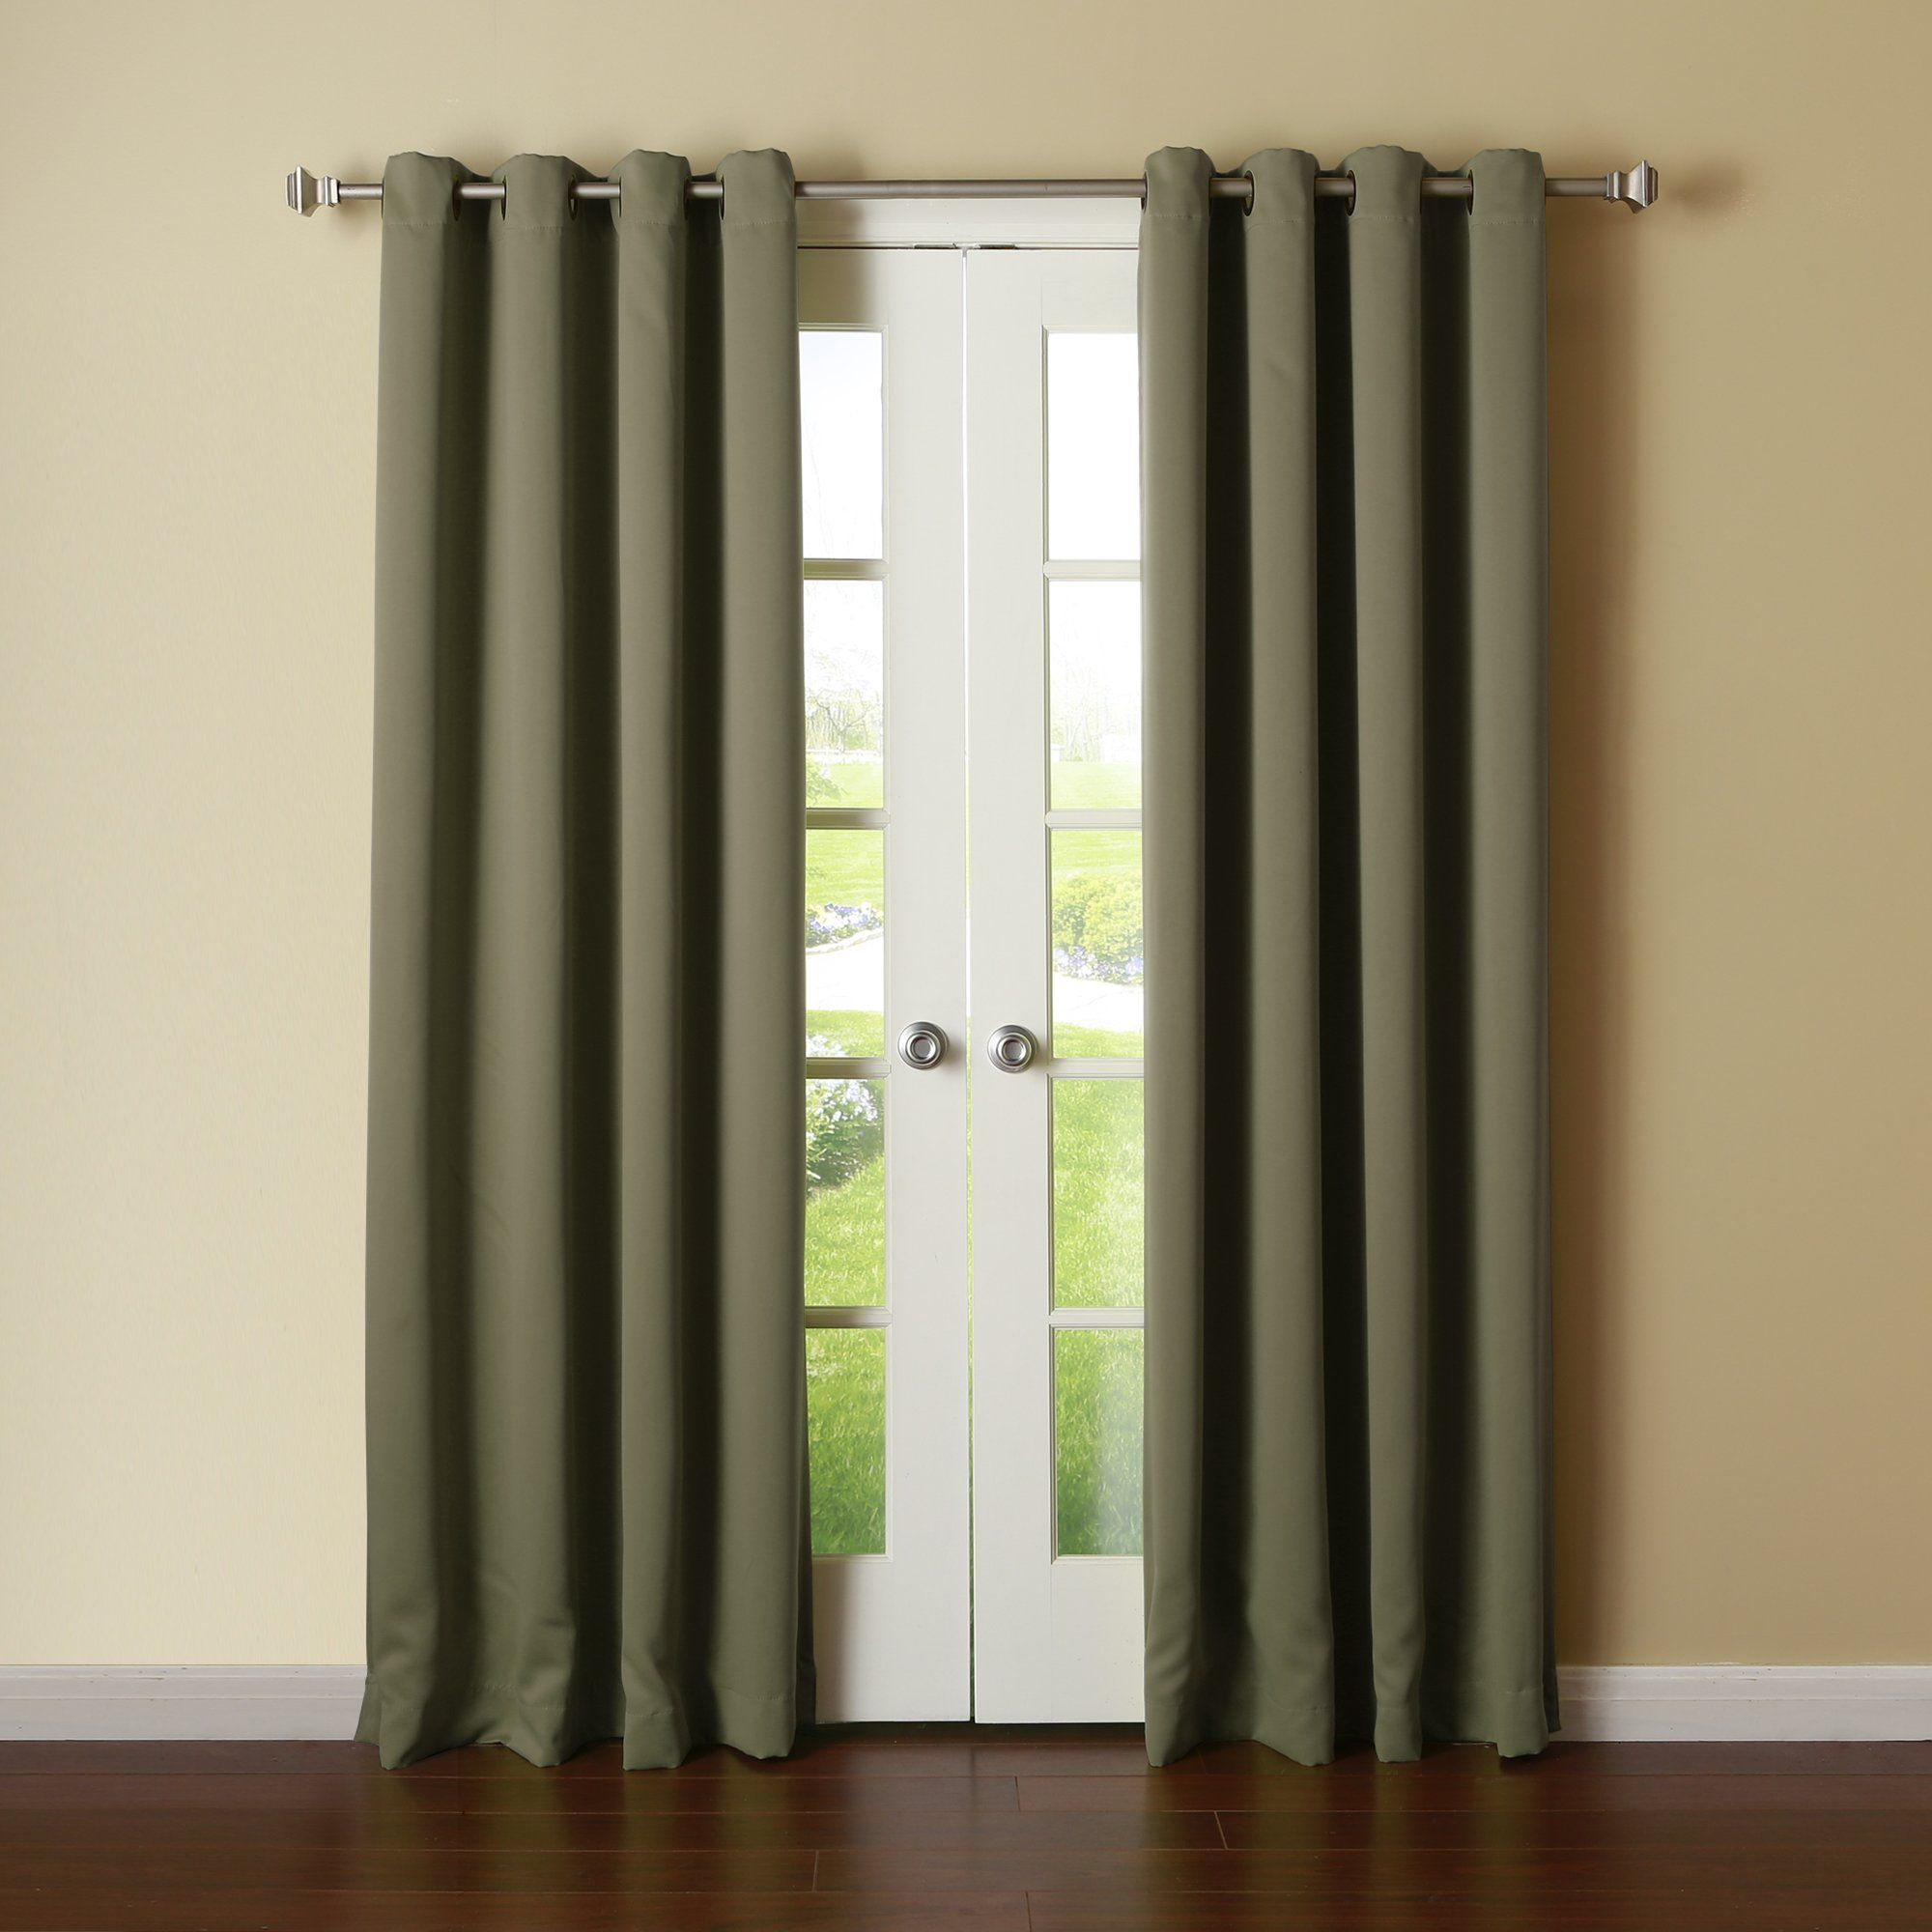 curtains wide full valance to com rod pocket u window perfect fashion panel bbaigue black thermal how insulated panels image beautiful make kitchen shade tie of blackout wonderful charm home l beloved amazon curtain top uncommon awful picture w up incre size best